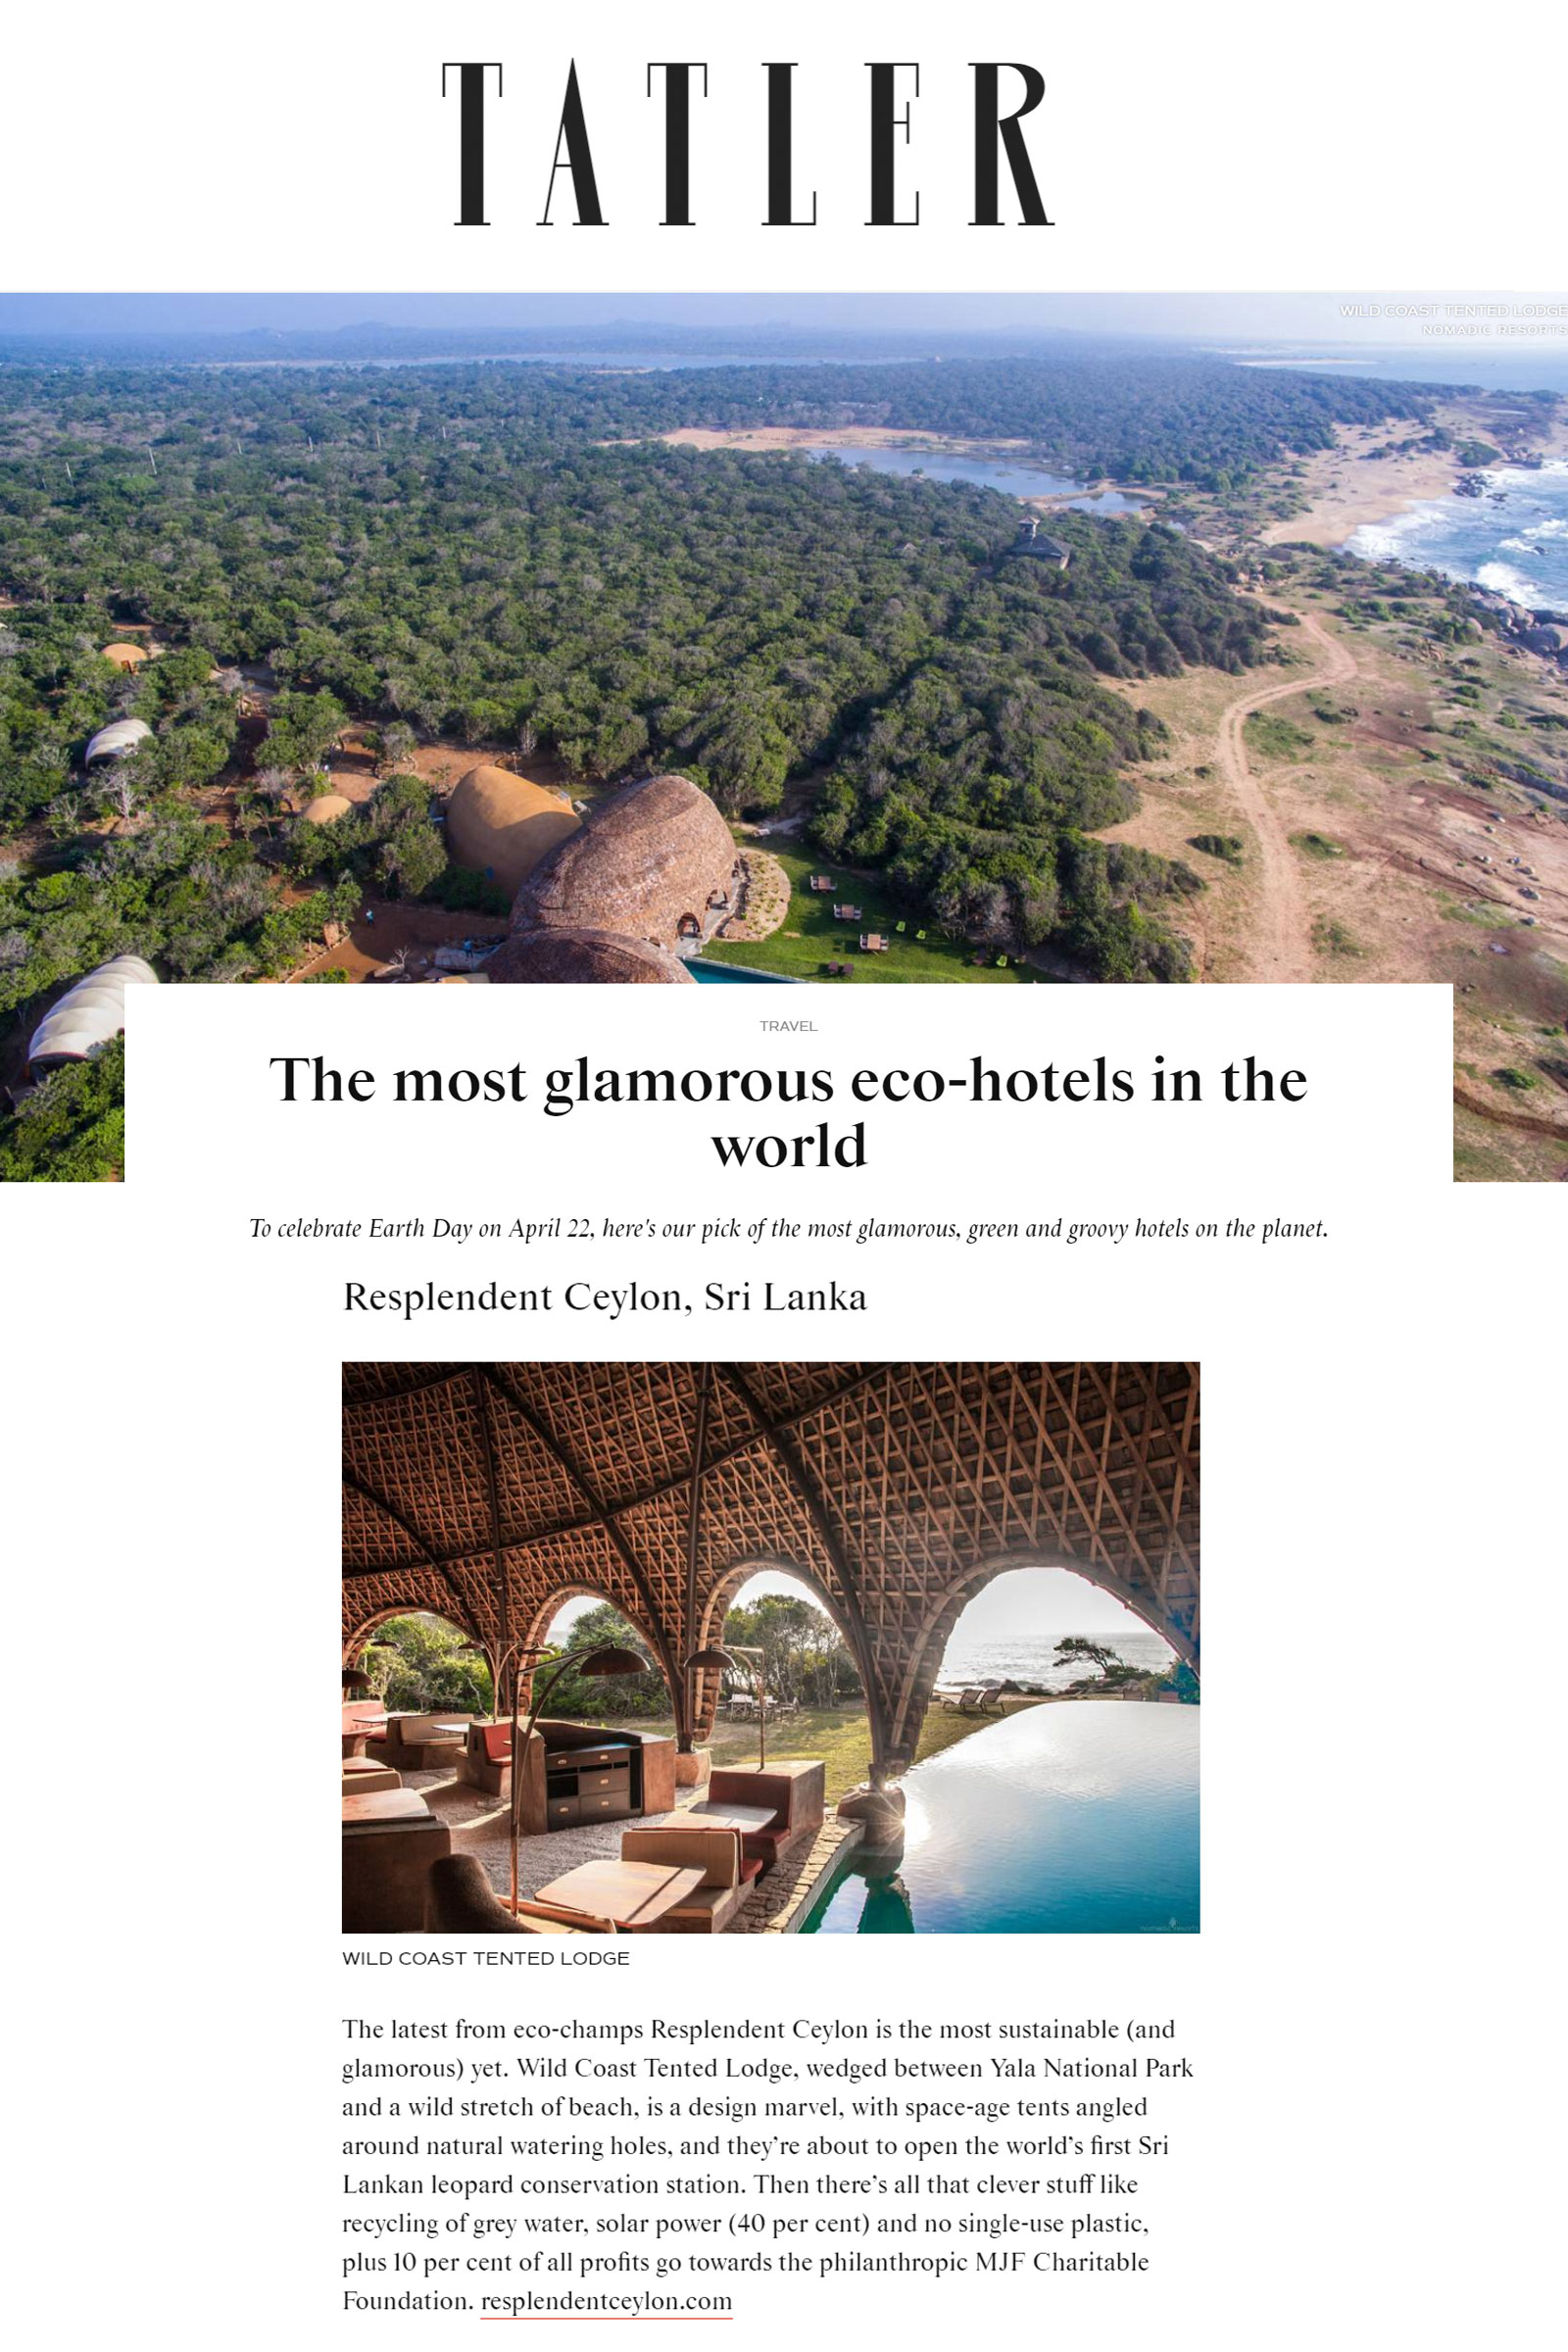 wild coast tented lodge among tatler's most glamorous eco hotels in the world